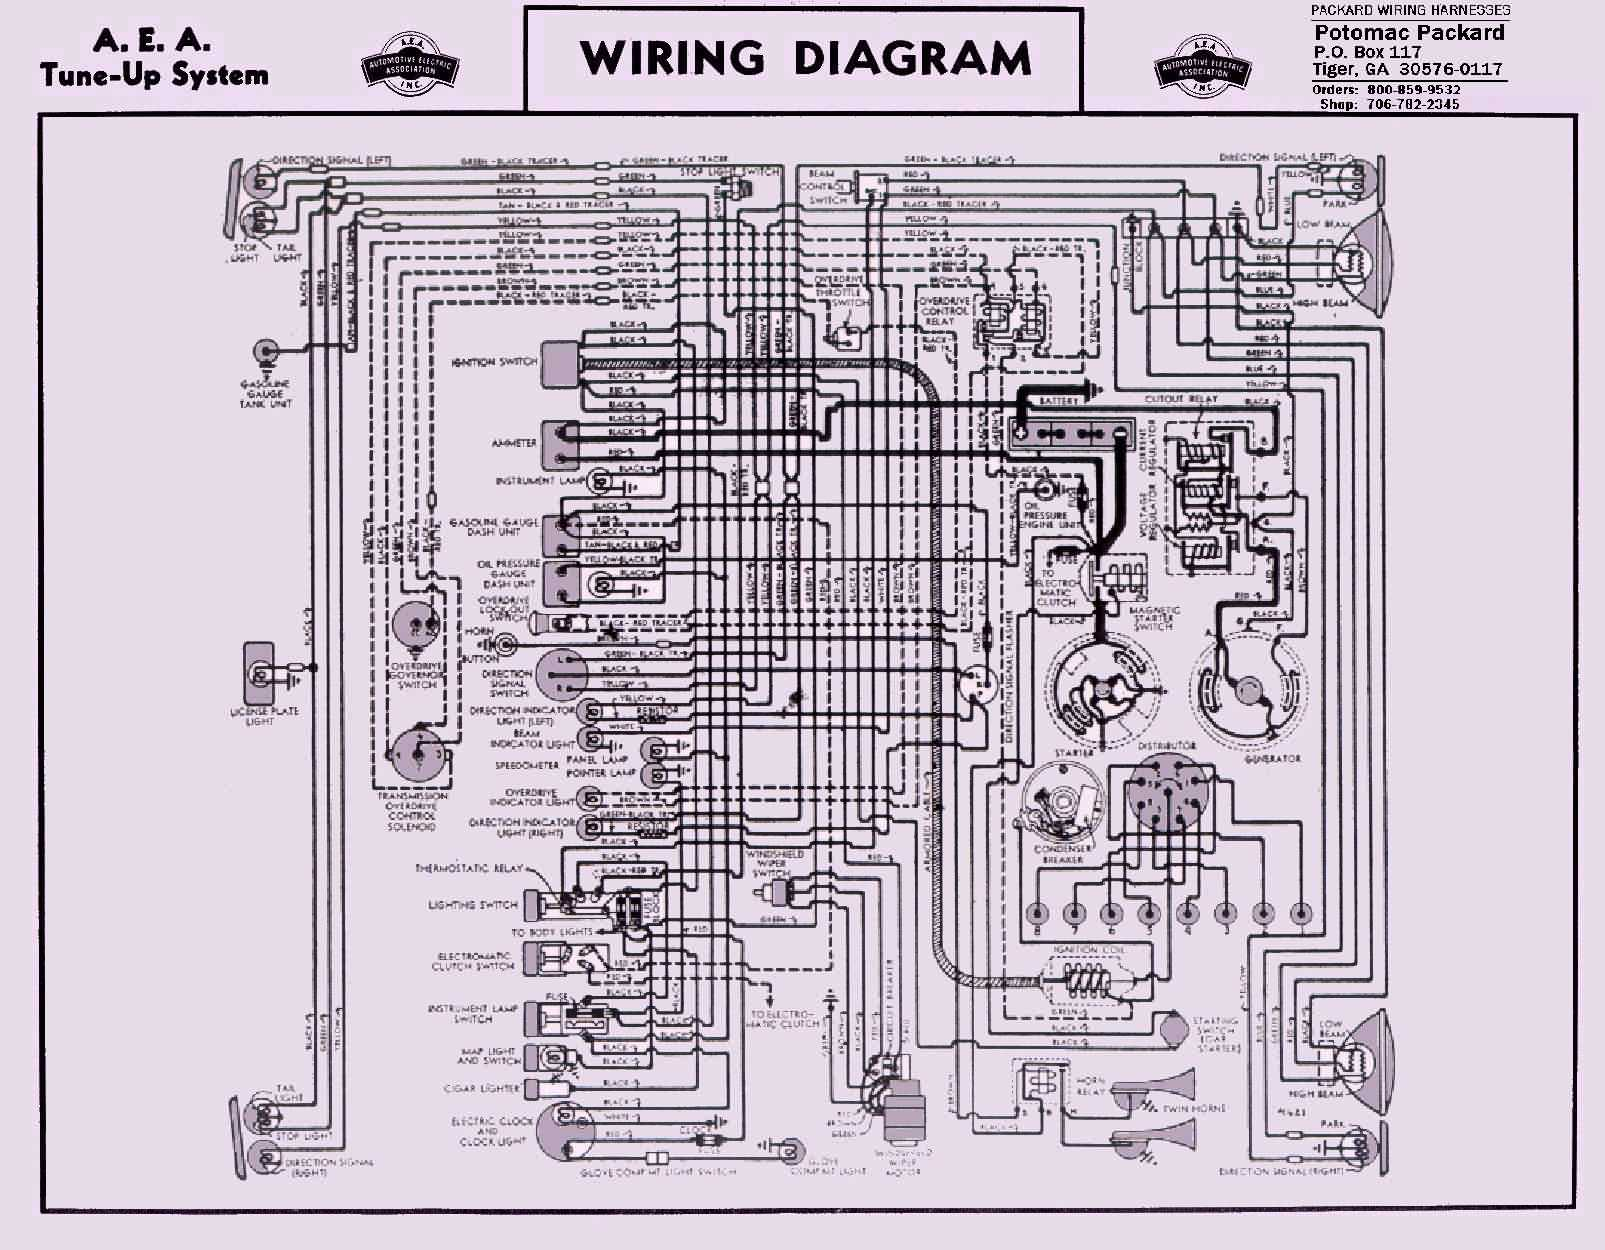 1947 Dodge Wiring Diagram Wire Data Schema 1942 Packard Enthusiast Diagrams U2022 Rh Rasalibre Co 1974 Chrysler